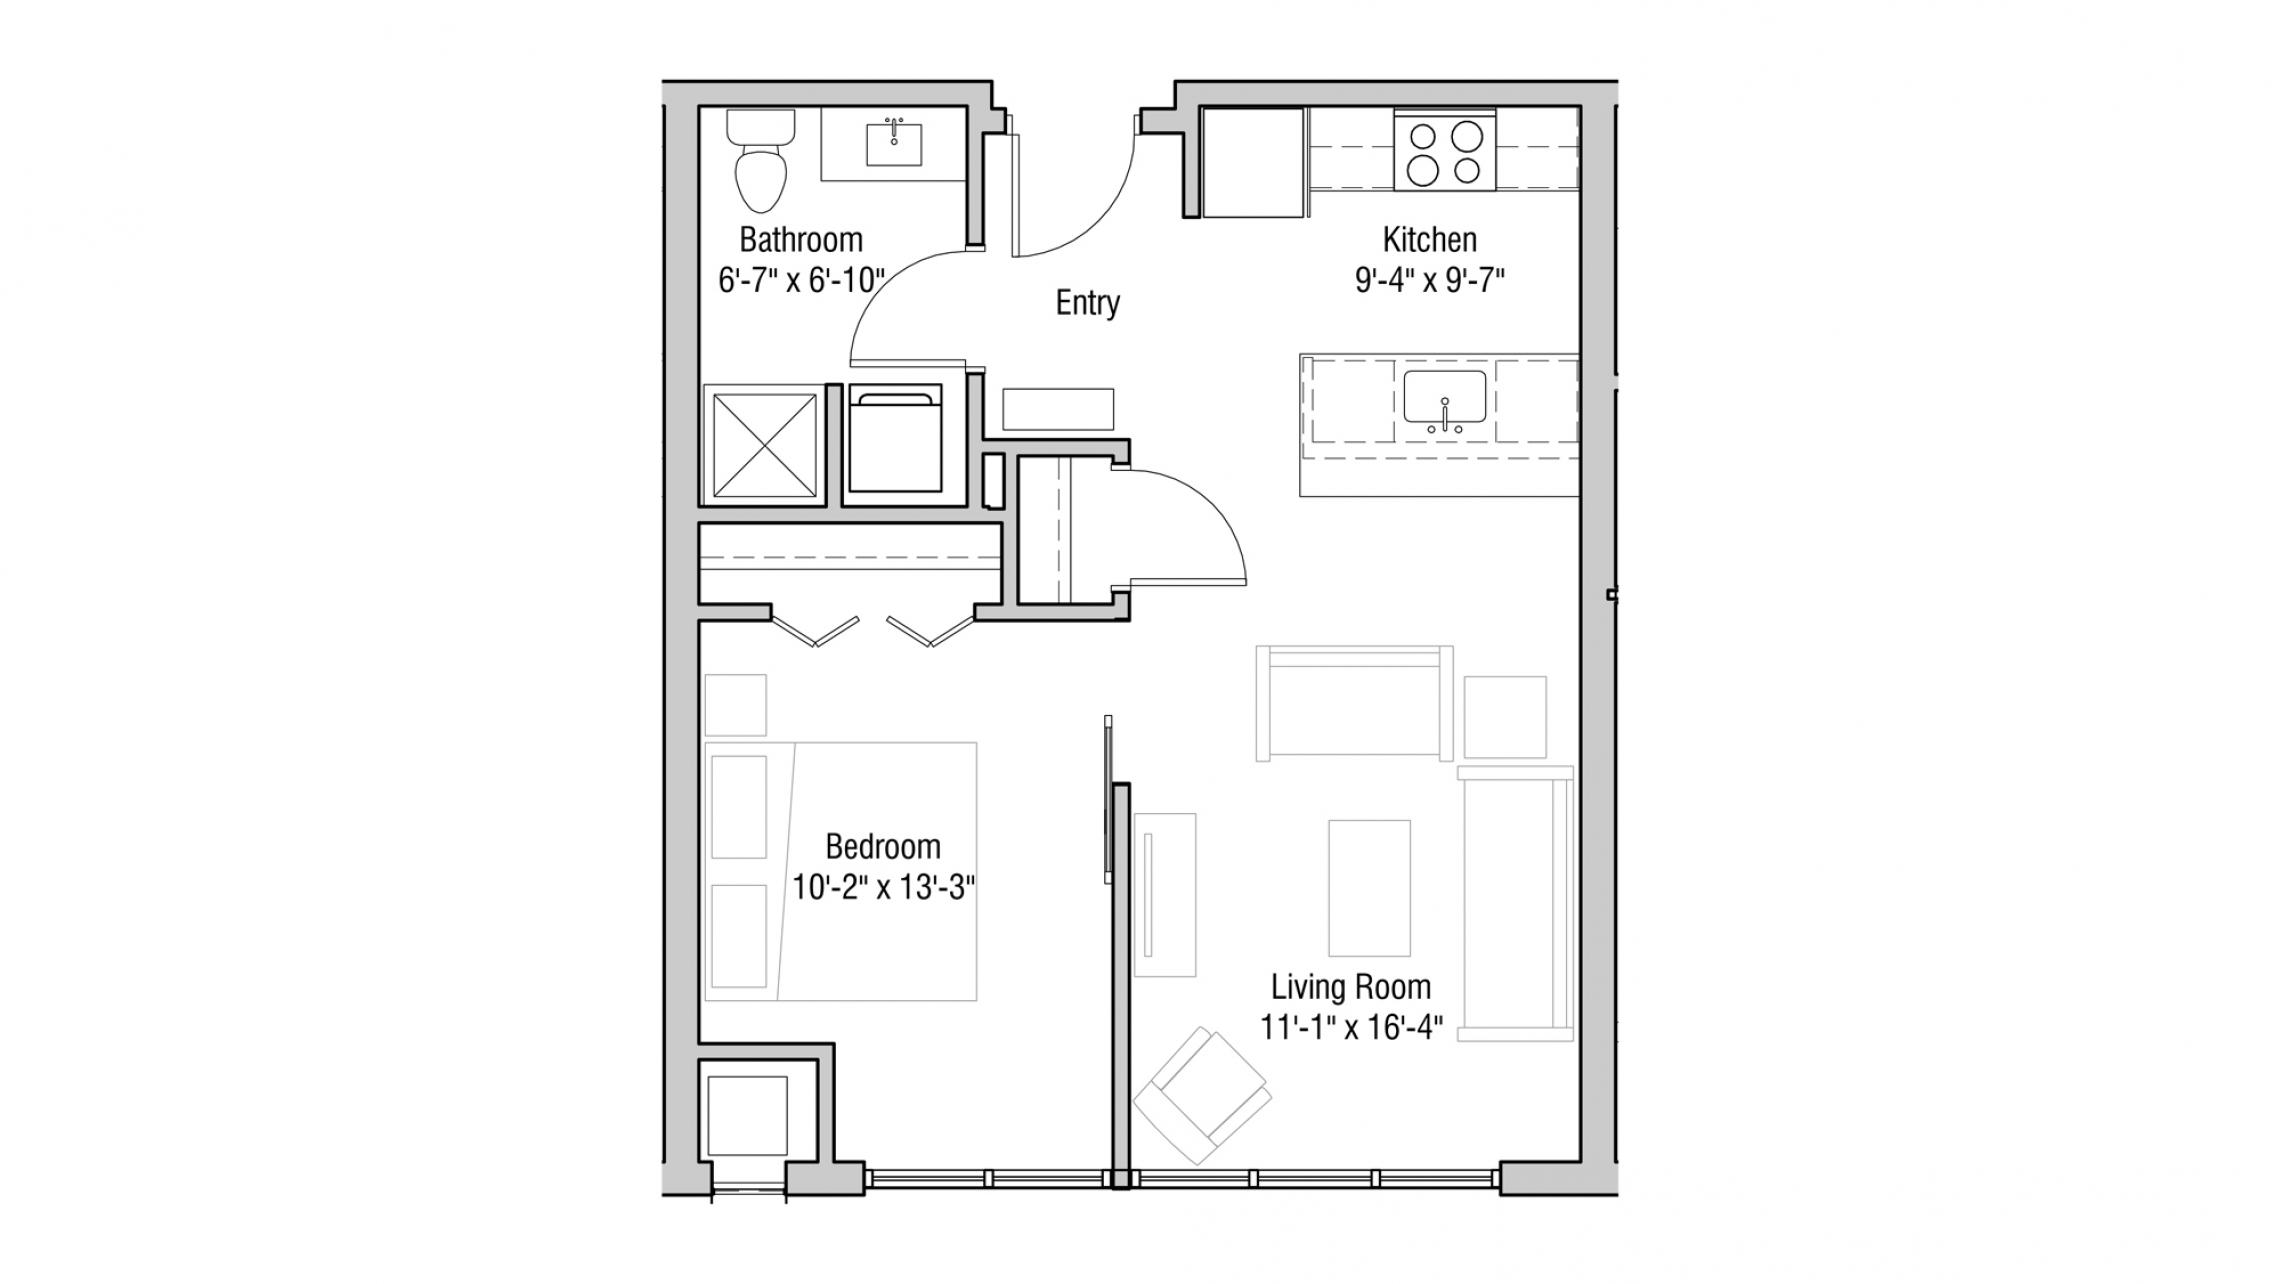 ULI Quarter Row 413 - One Bedroom, One Bathroom